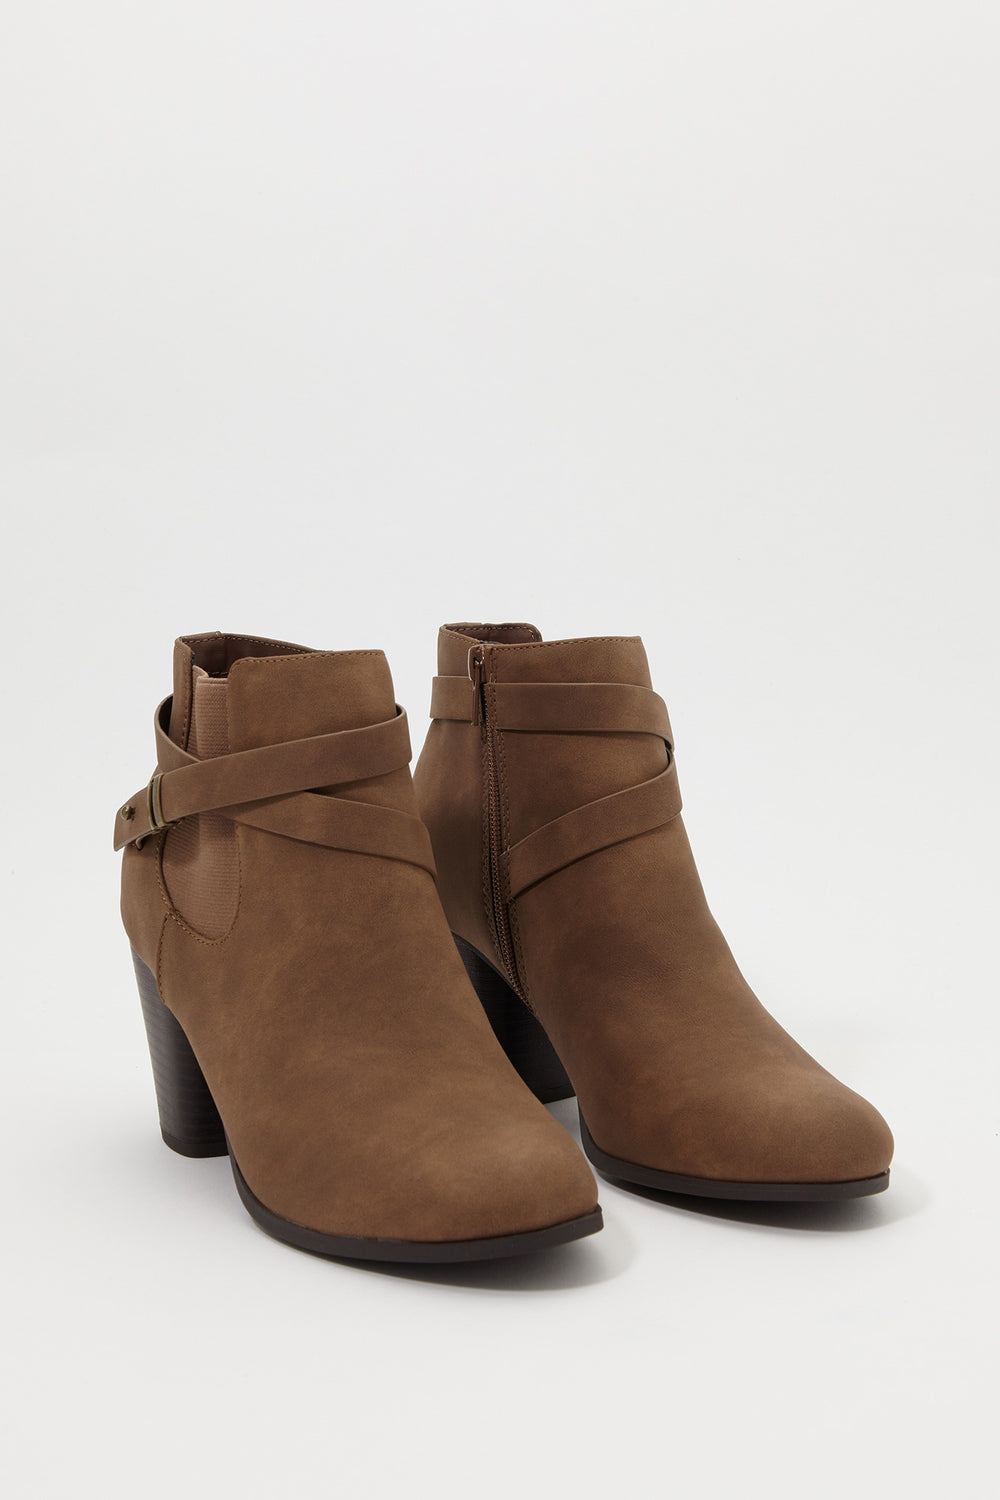 Almond Cross Strap Heel Bootie Taupe